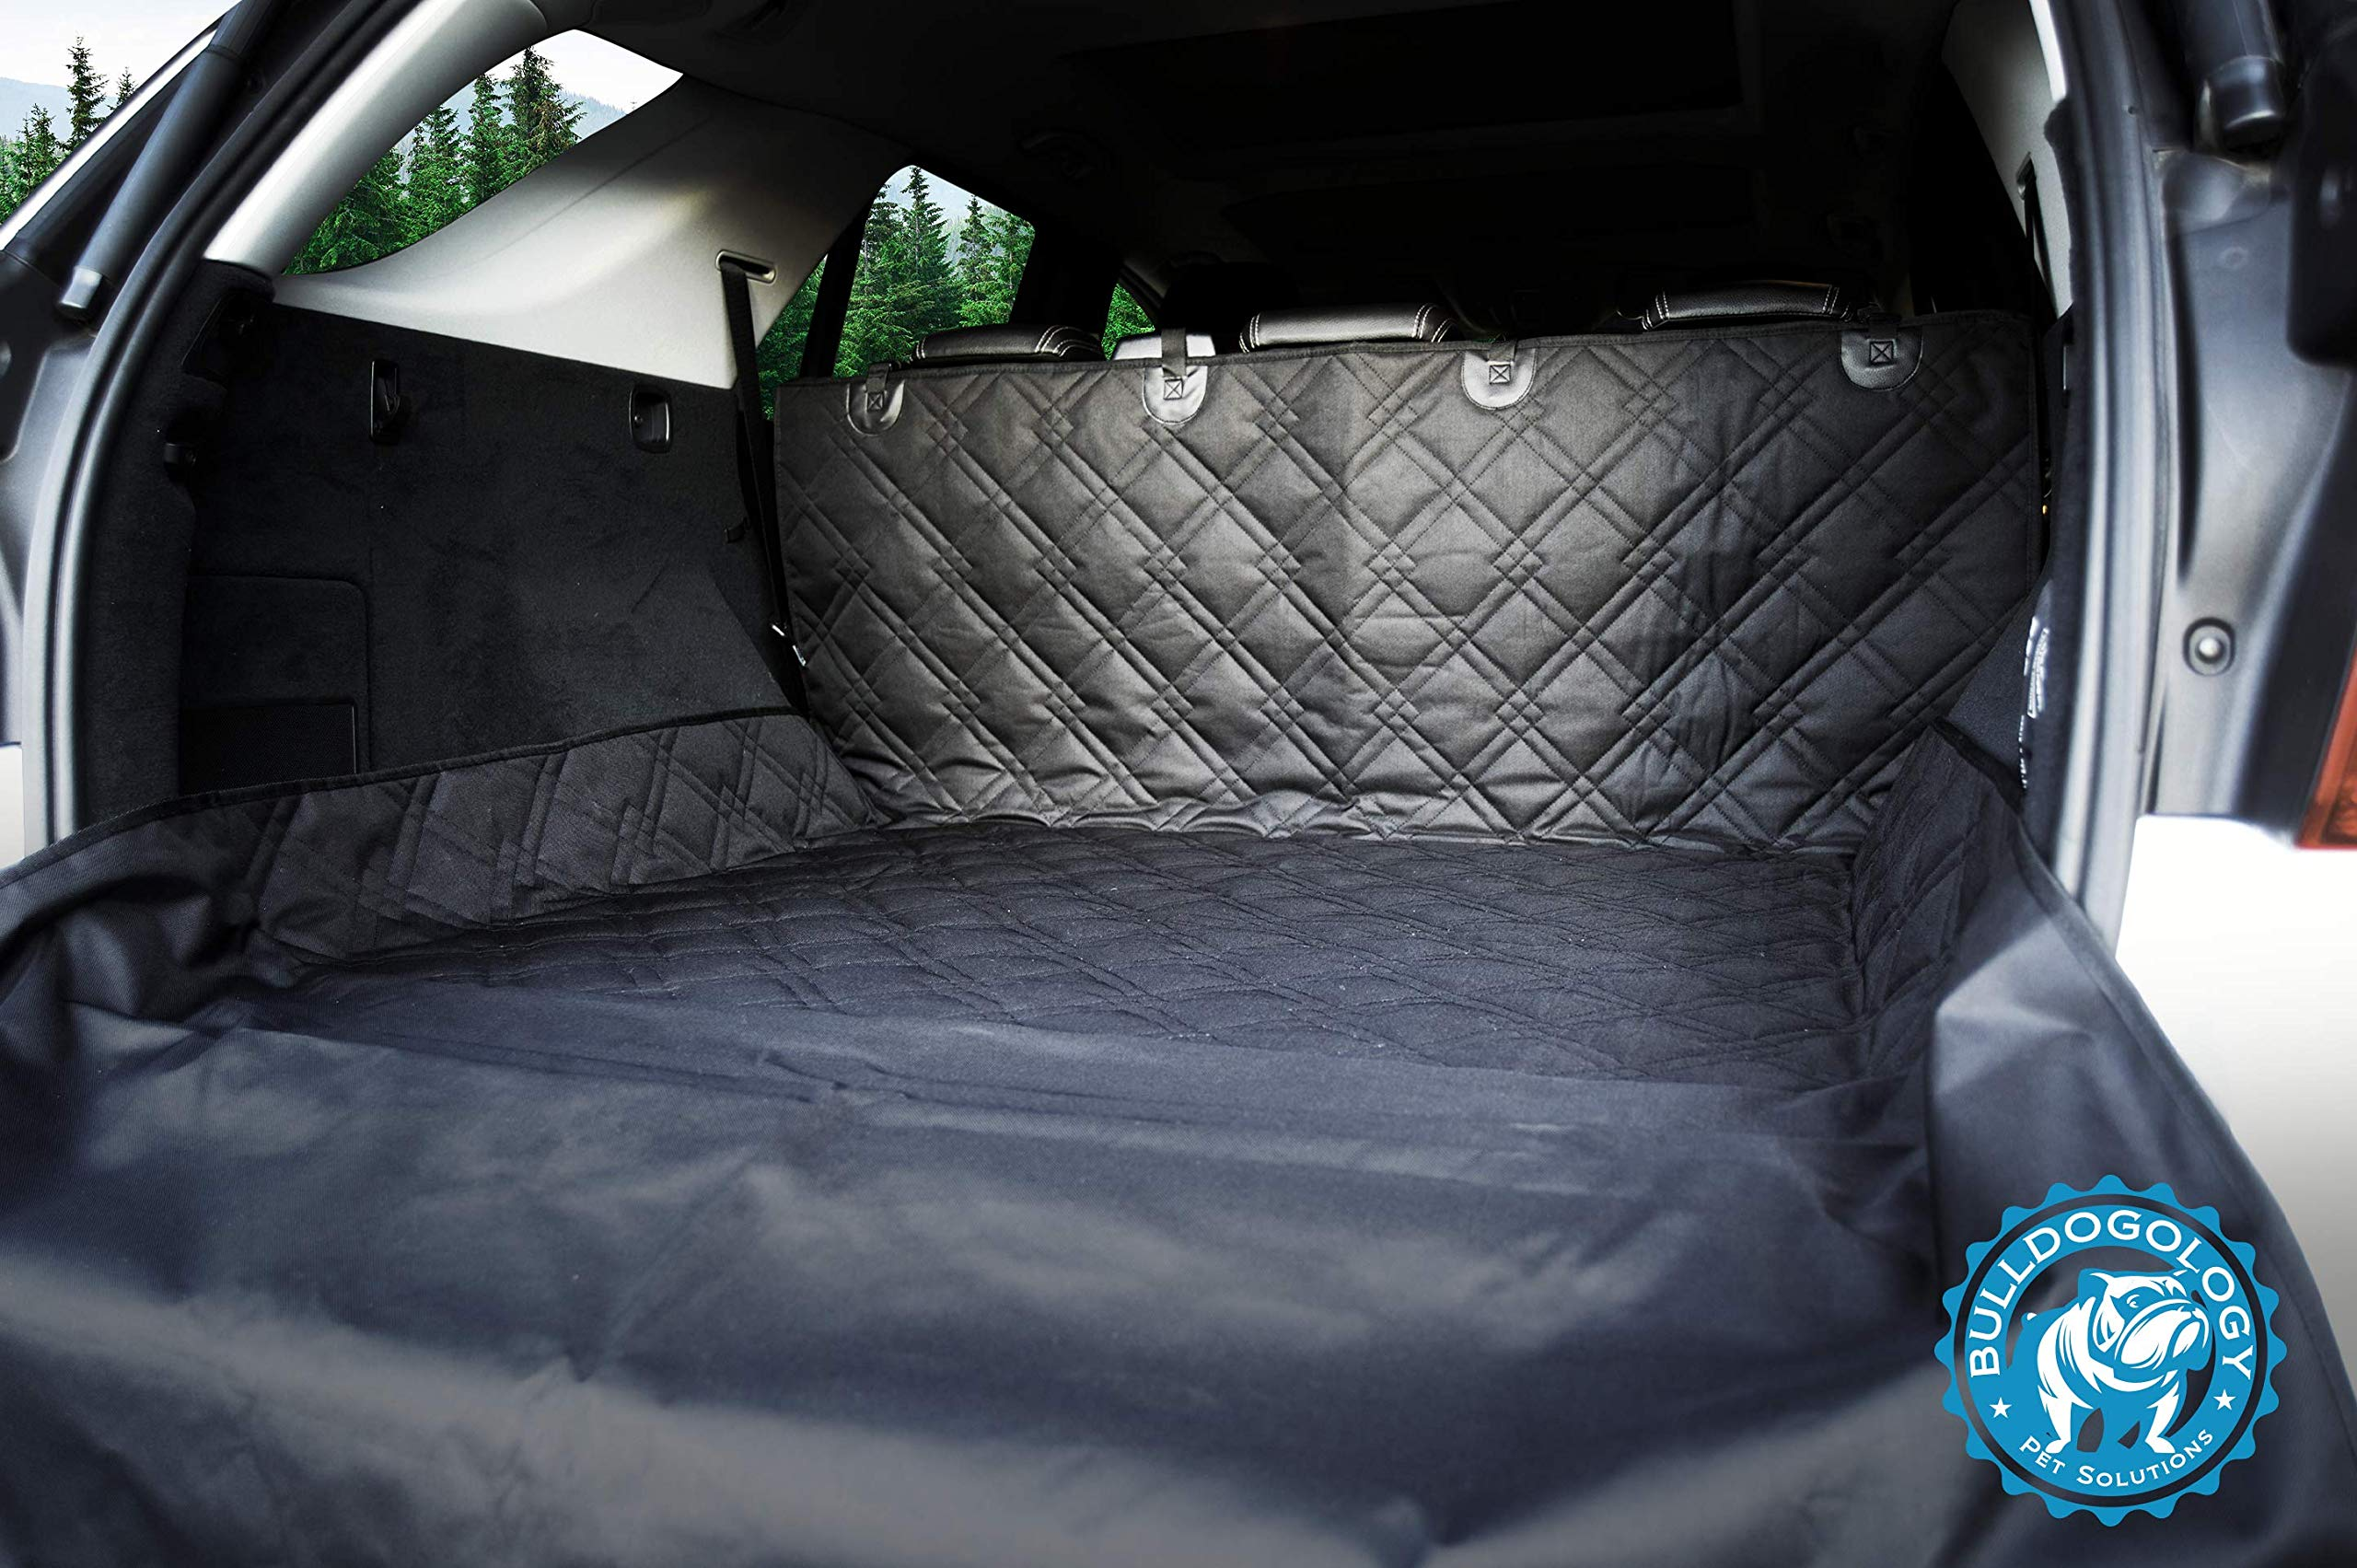 Bulldogology Premium SUV Cargo Liner Seat Cover for Dogs - Heavy Duty, Waterproof, Nonslip Backing, Washable, with Bumper Flap Protection (Large, Black) by Bulldogology